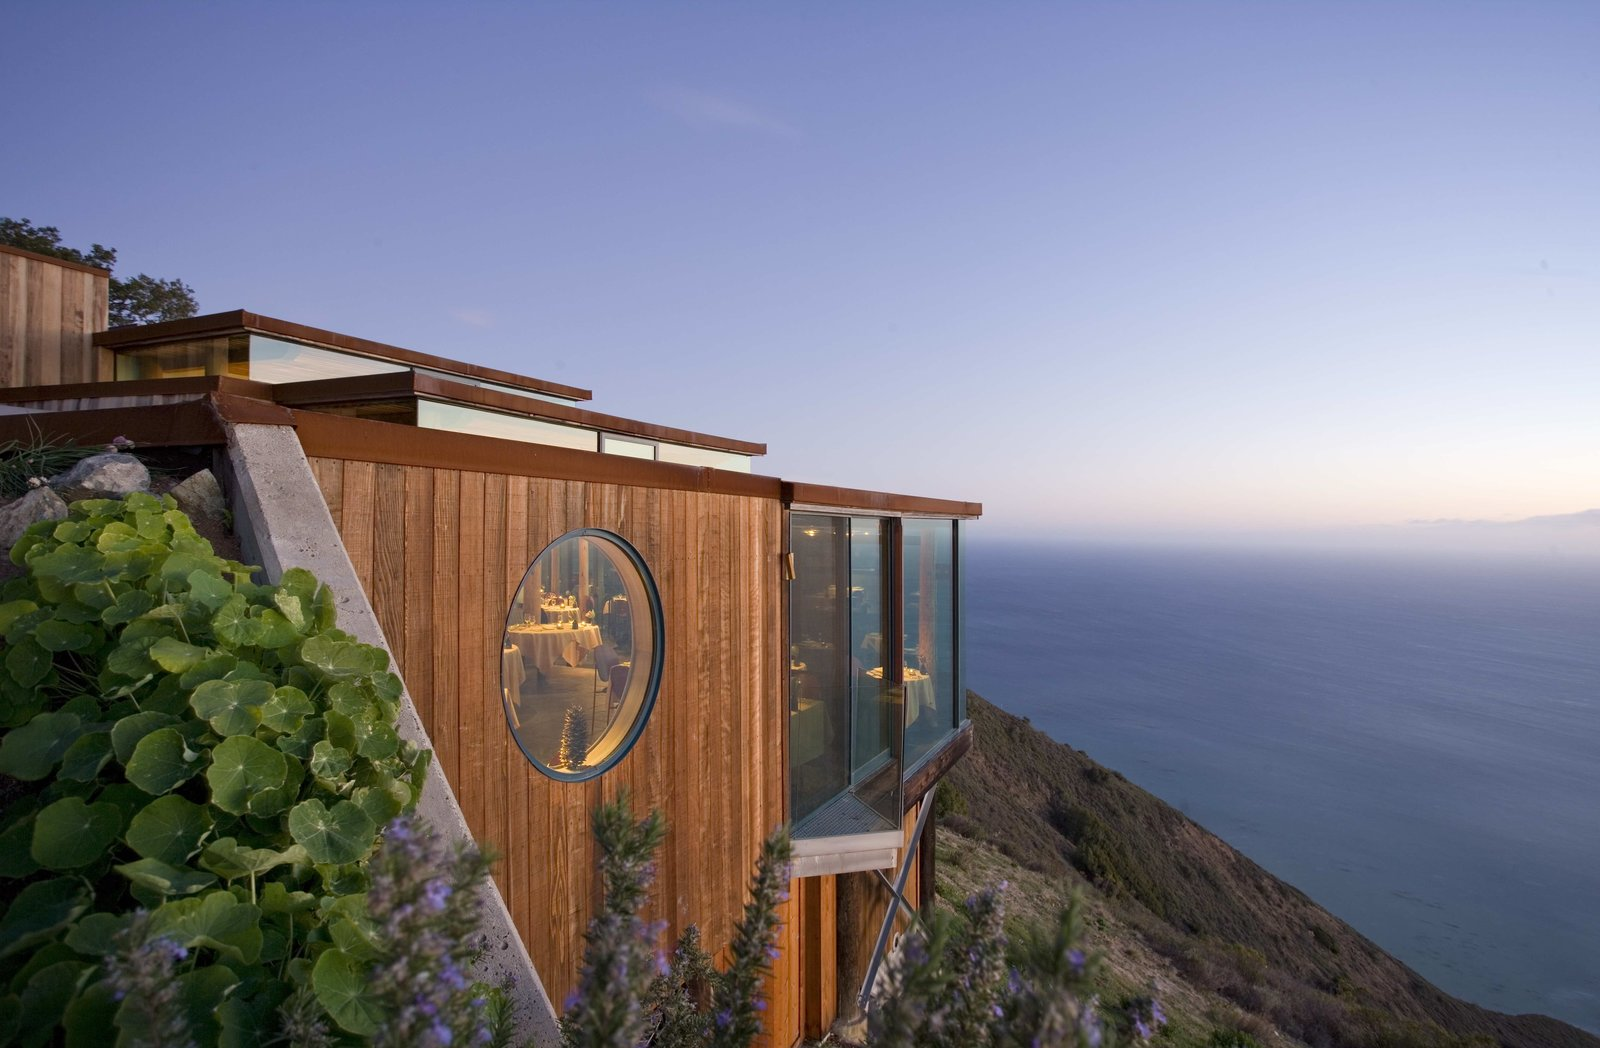 The Cliff House in Post Ranch Inn is a free-standing structure with a large outdoor deck hanging over the cliffs.  Photo 2 of 10 in 10 Cliffside Destinations That Will Make You Feel on Top of the World